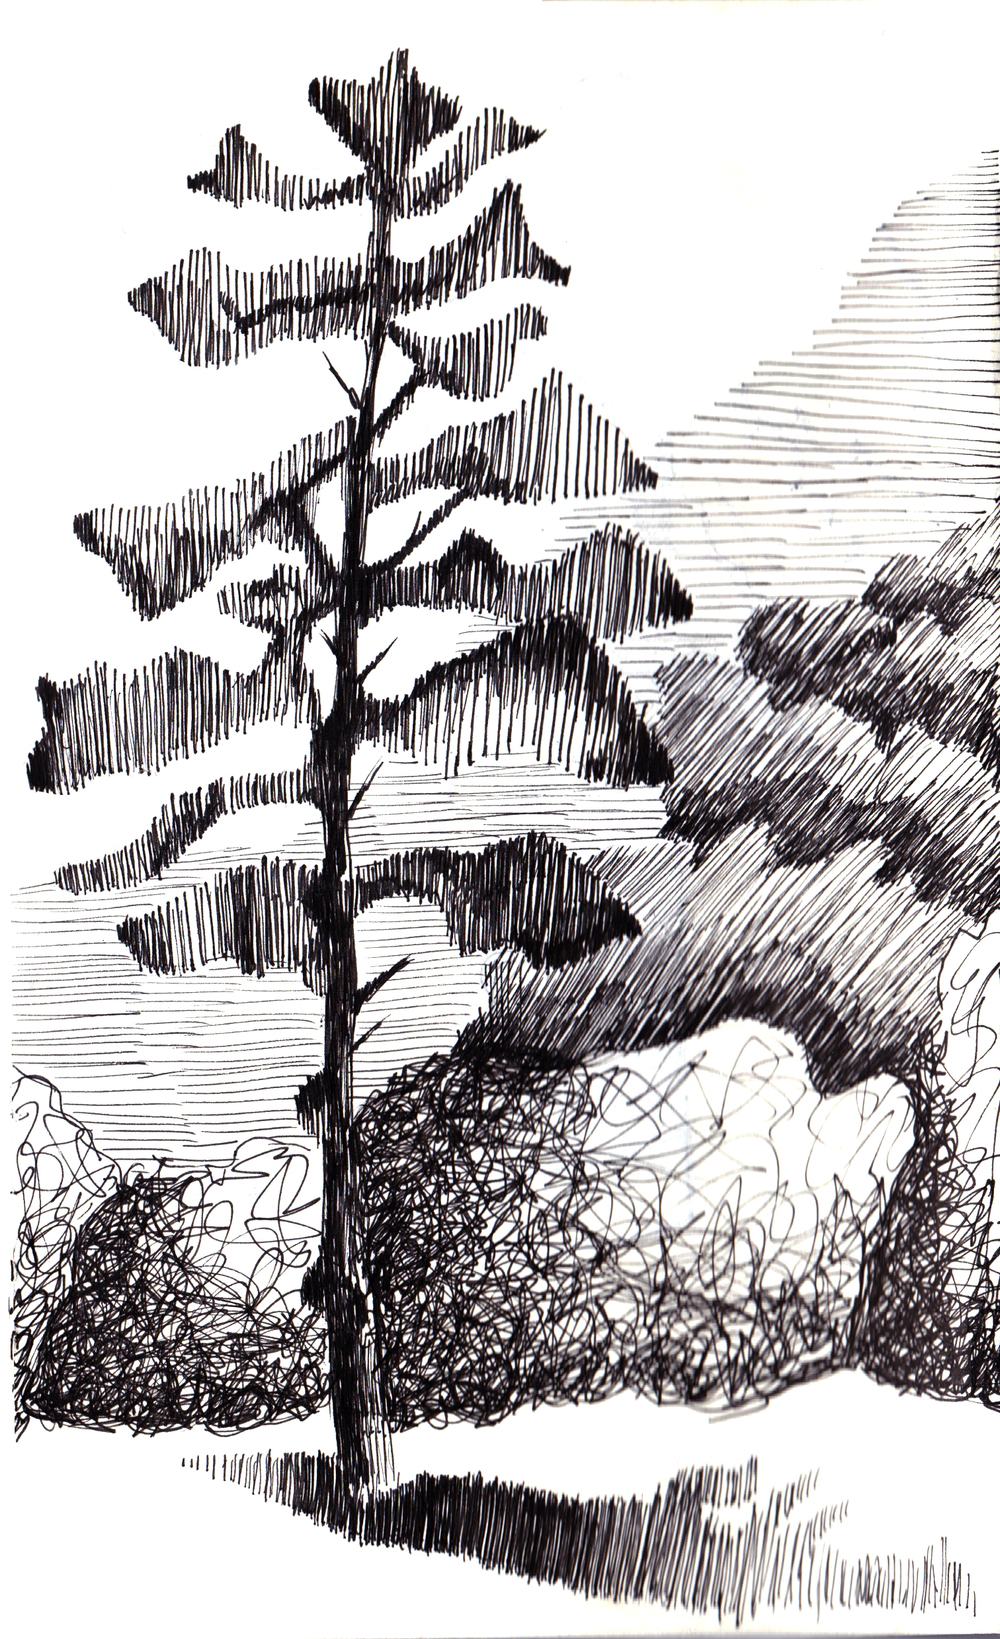 tree pen and ink edited blury copy copy.jpg